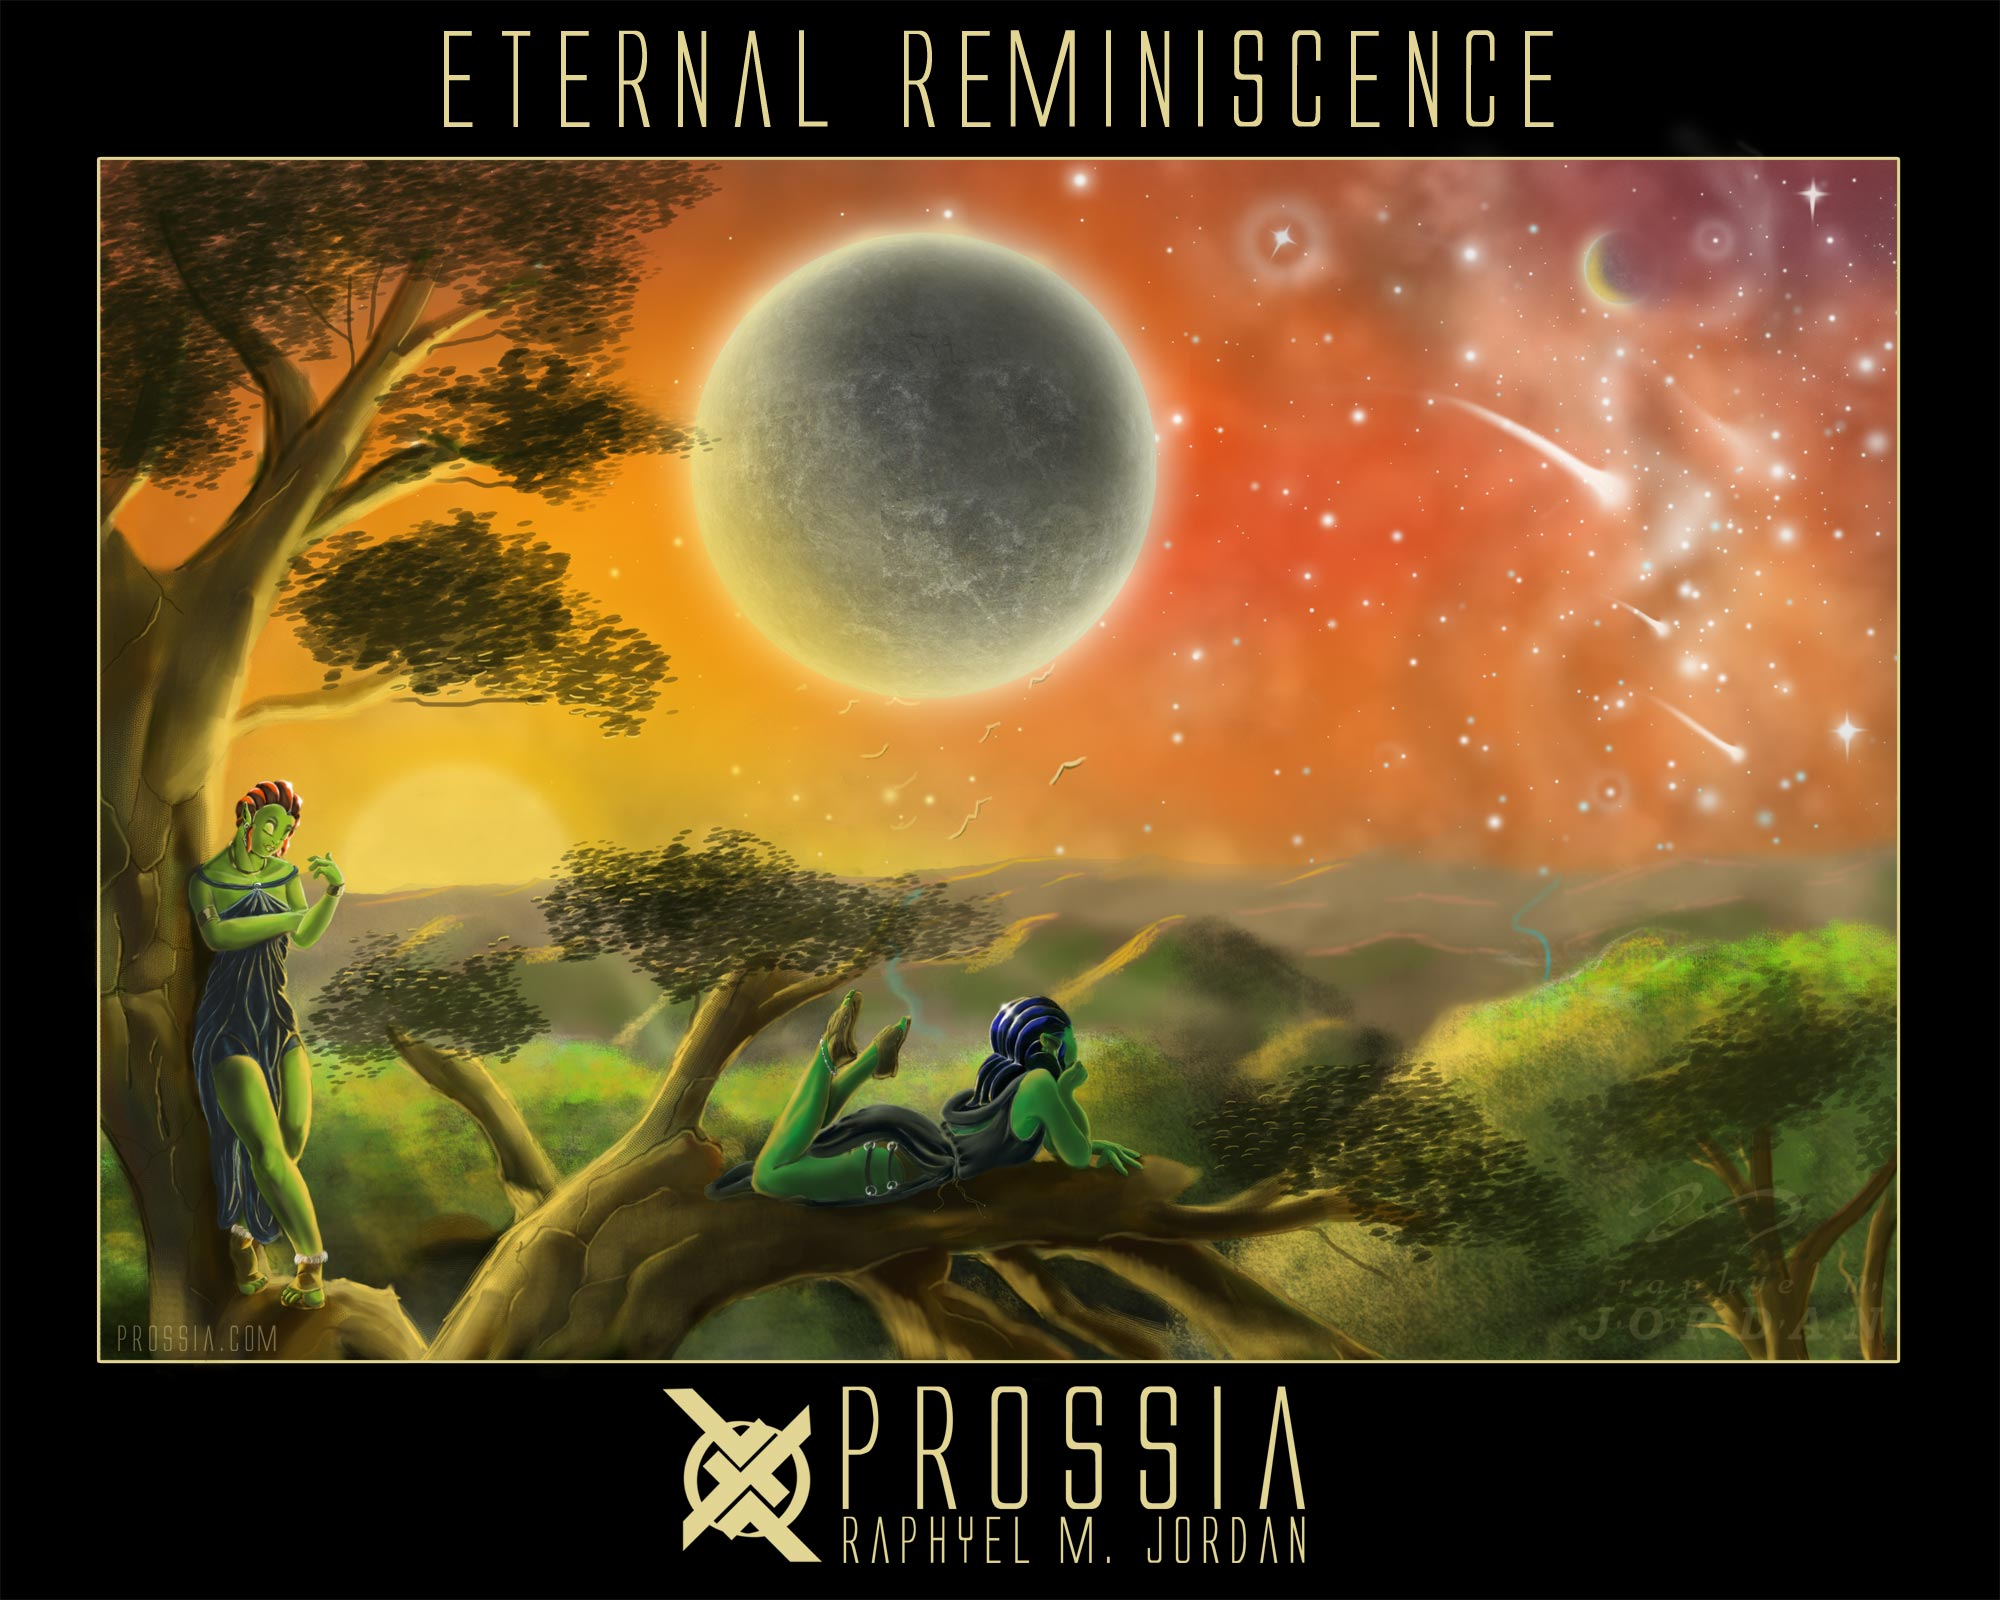 Eternal Reminiscence